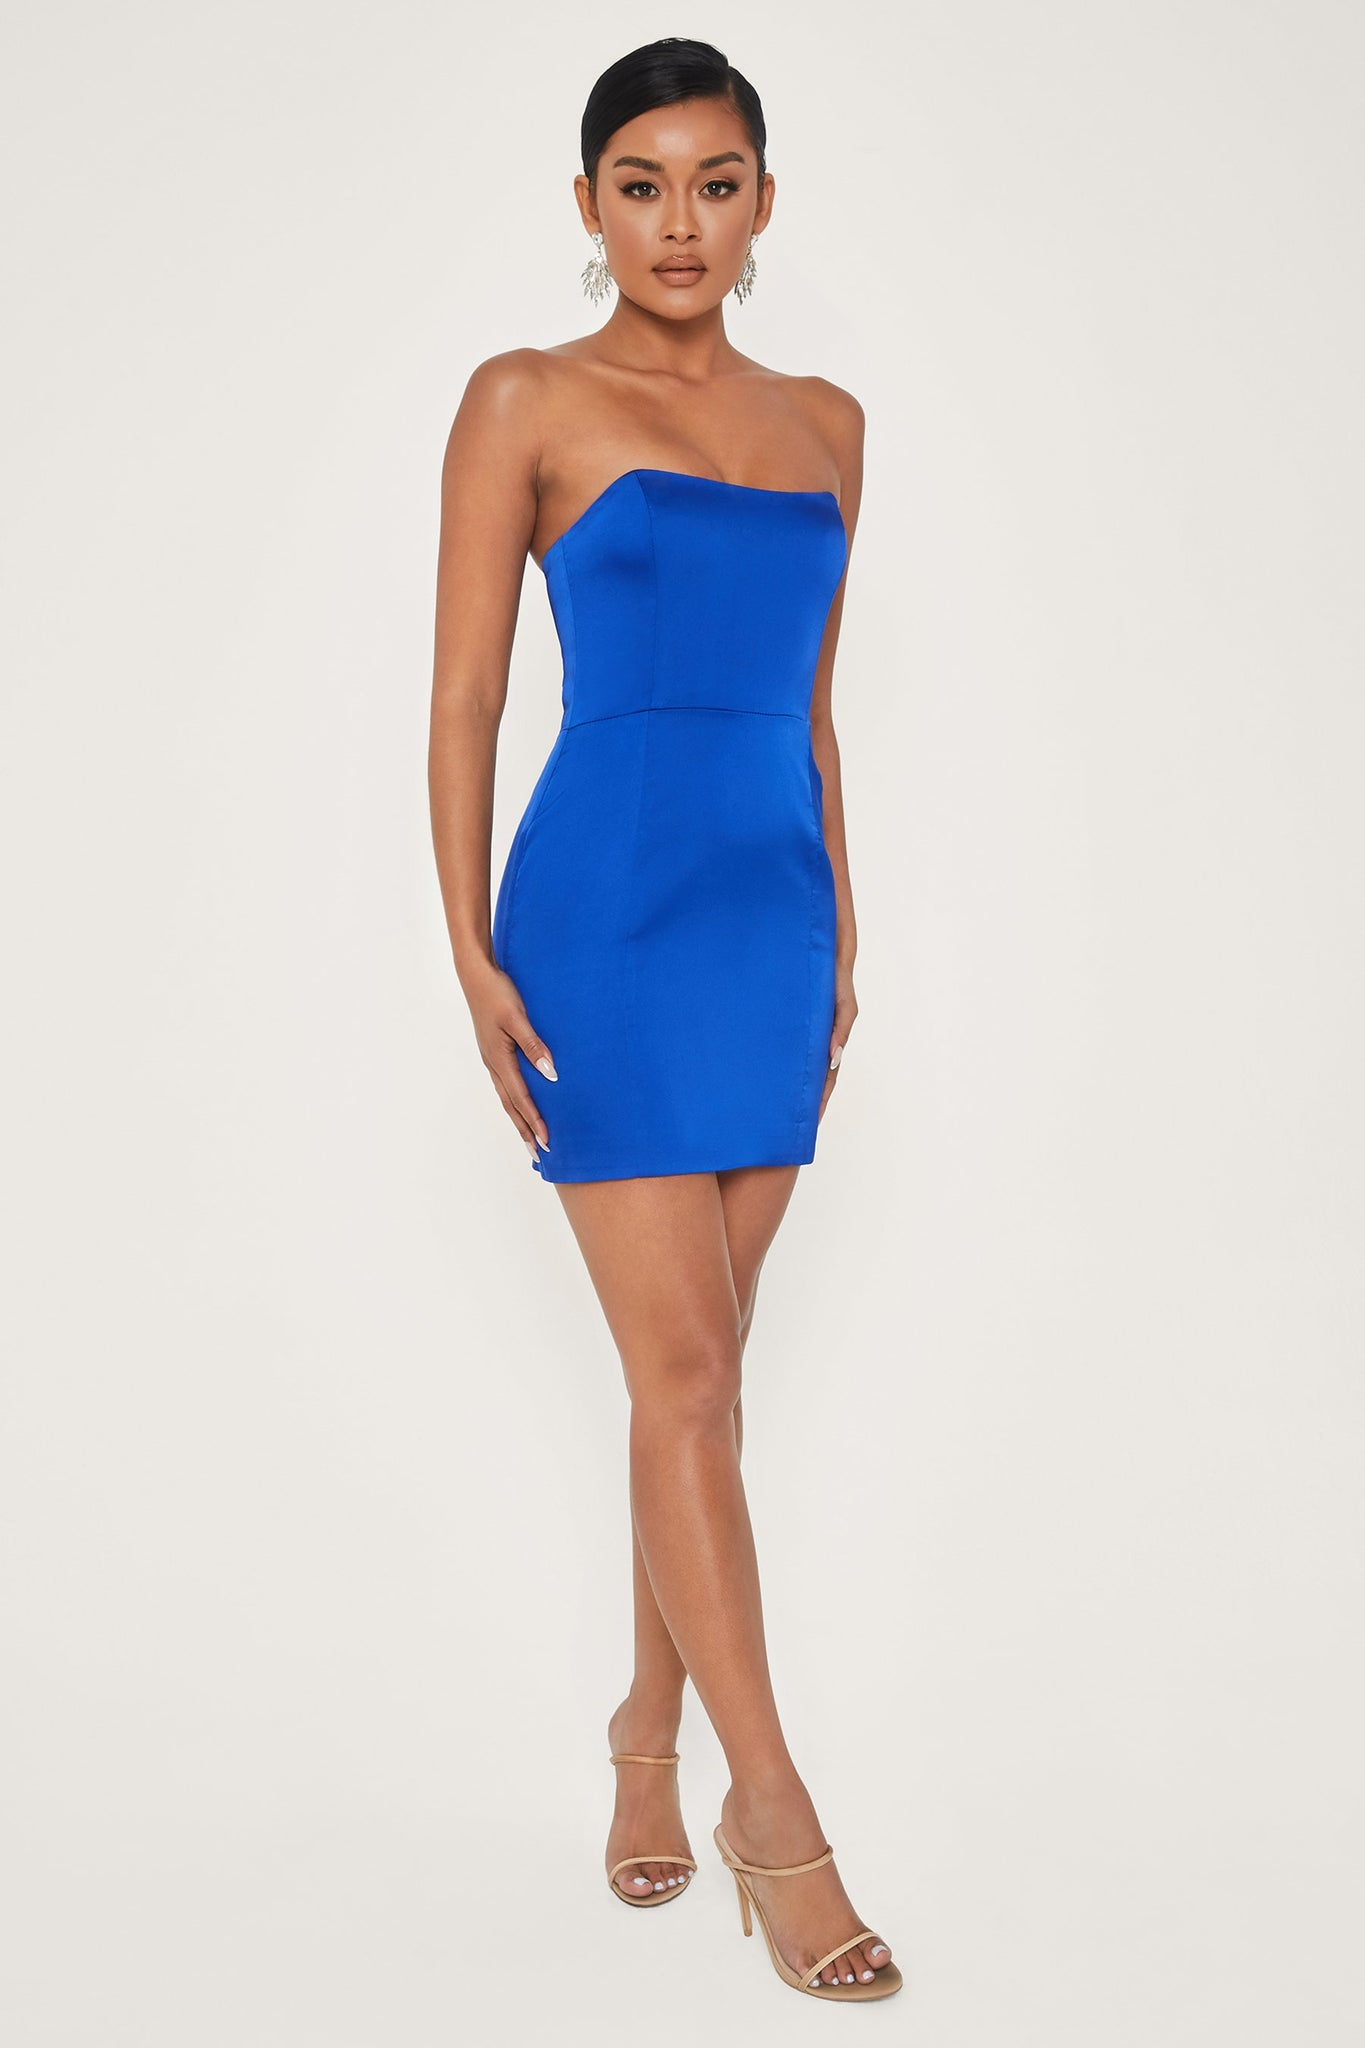 Kalita Strapless Satin Mini Dress - Bright Blue - MESHKI